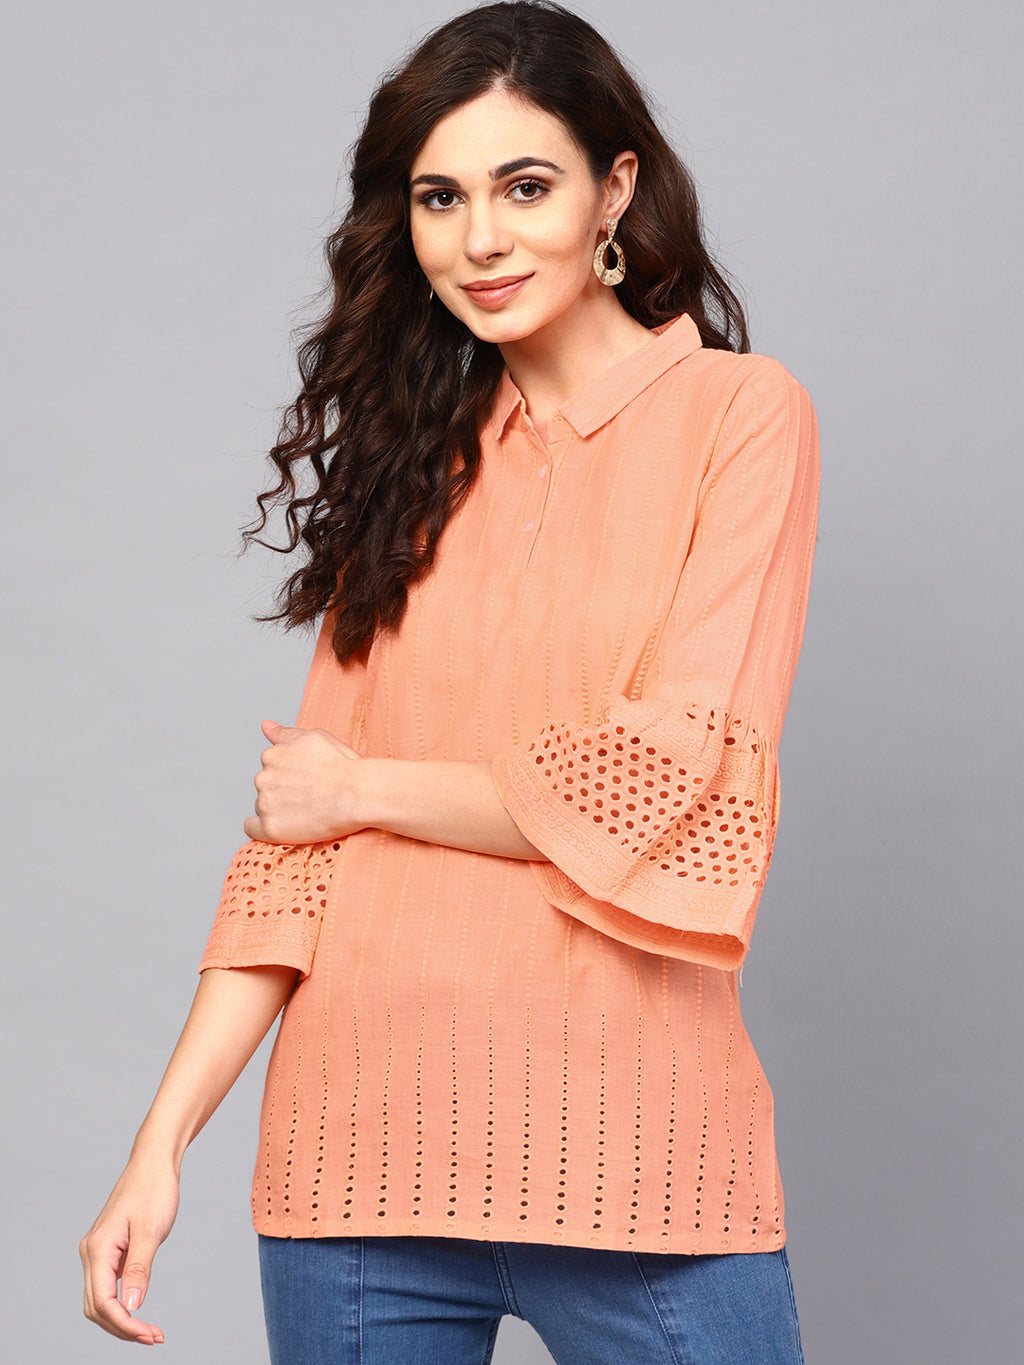 Peach Chikankari Work Tunic With Ruffle Sleeve (Fully Stitched) | Znx4ever.com